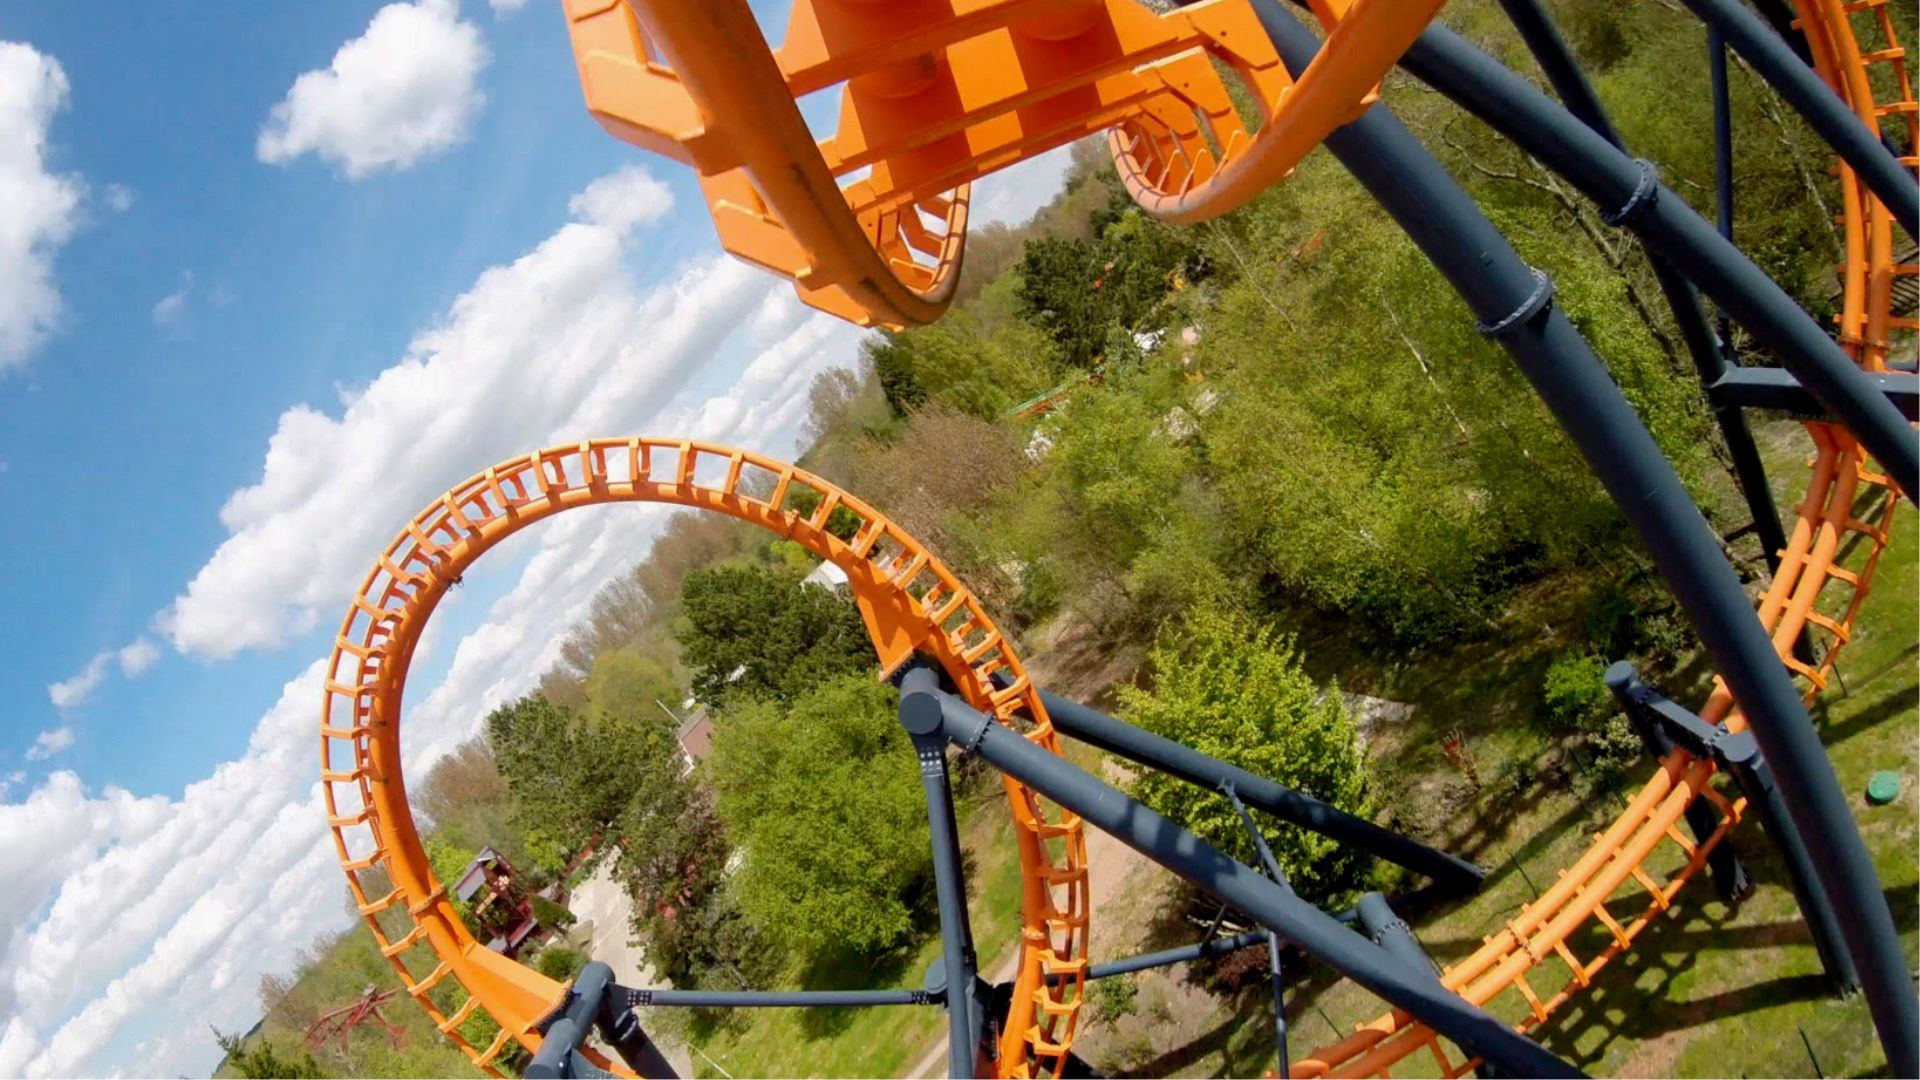 Parc d'attraction Bagatelle